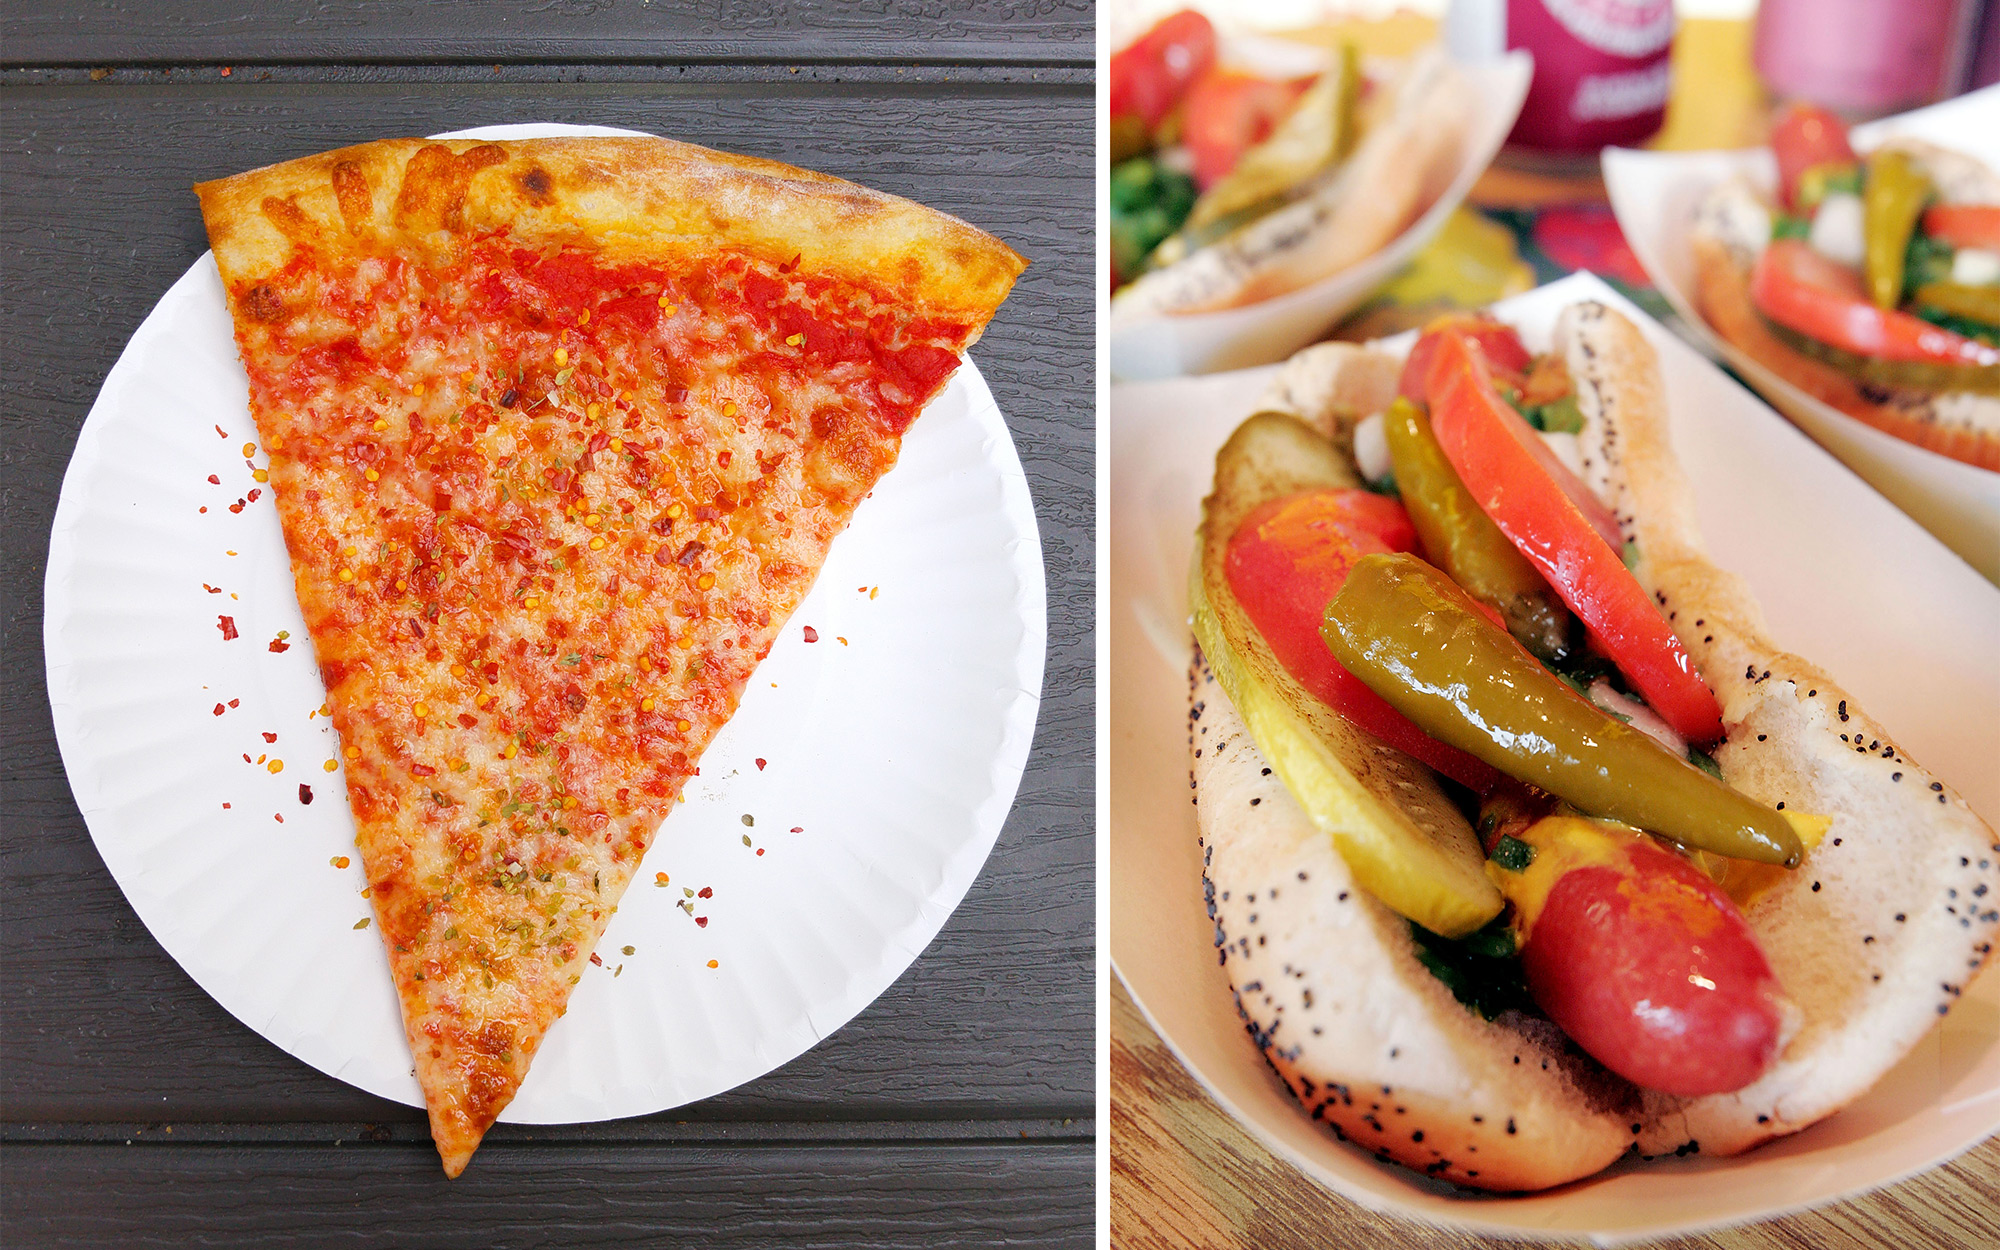 Chicago Food Versus New York Food